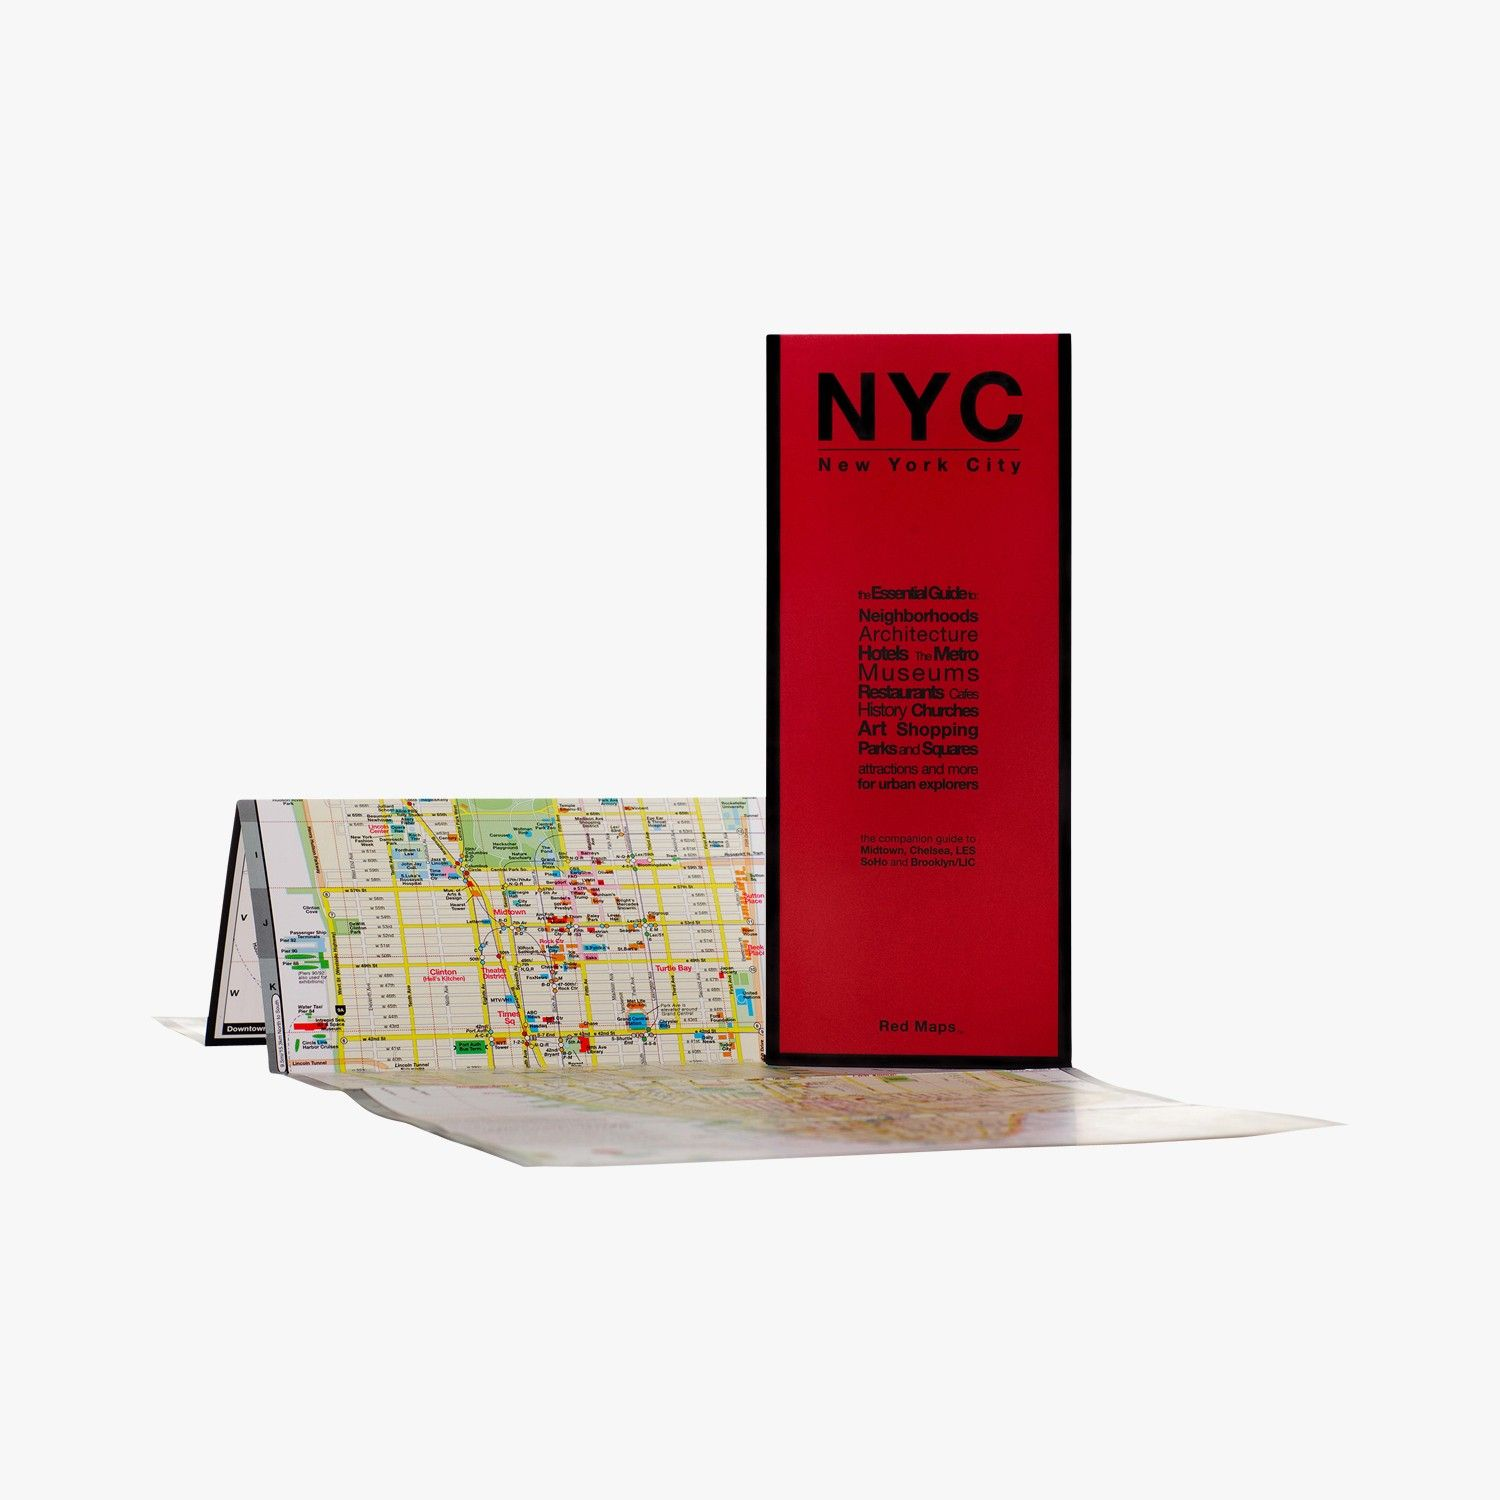 Red Maps New York City Find This Product On Bon Marche Website Le Bon Marche Rive Gauche Le Bon Marche Bon Marche Rive Gauche Horaire